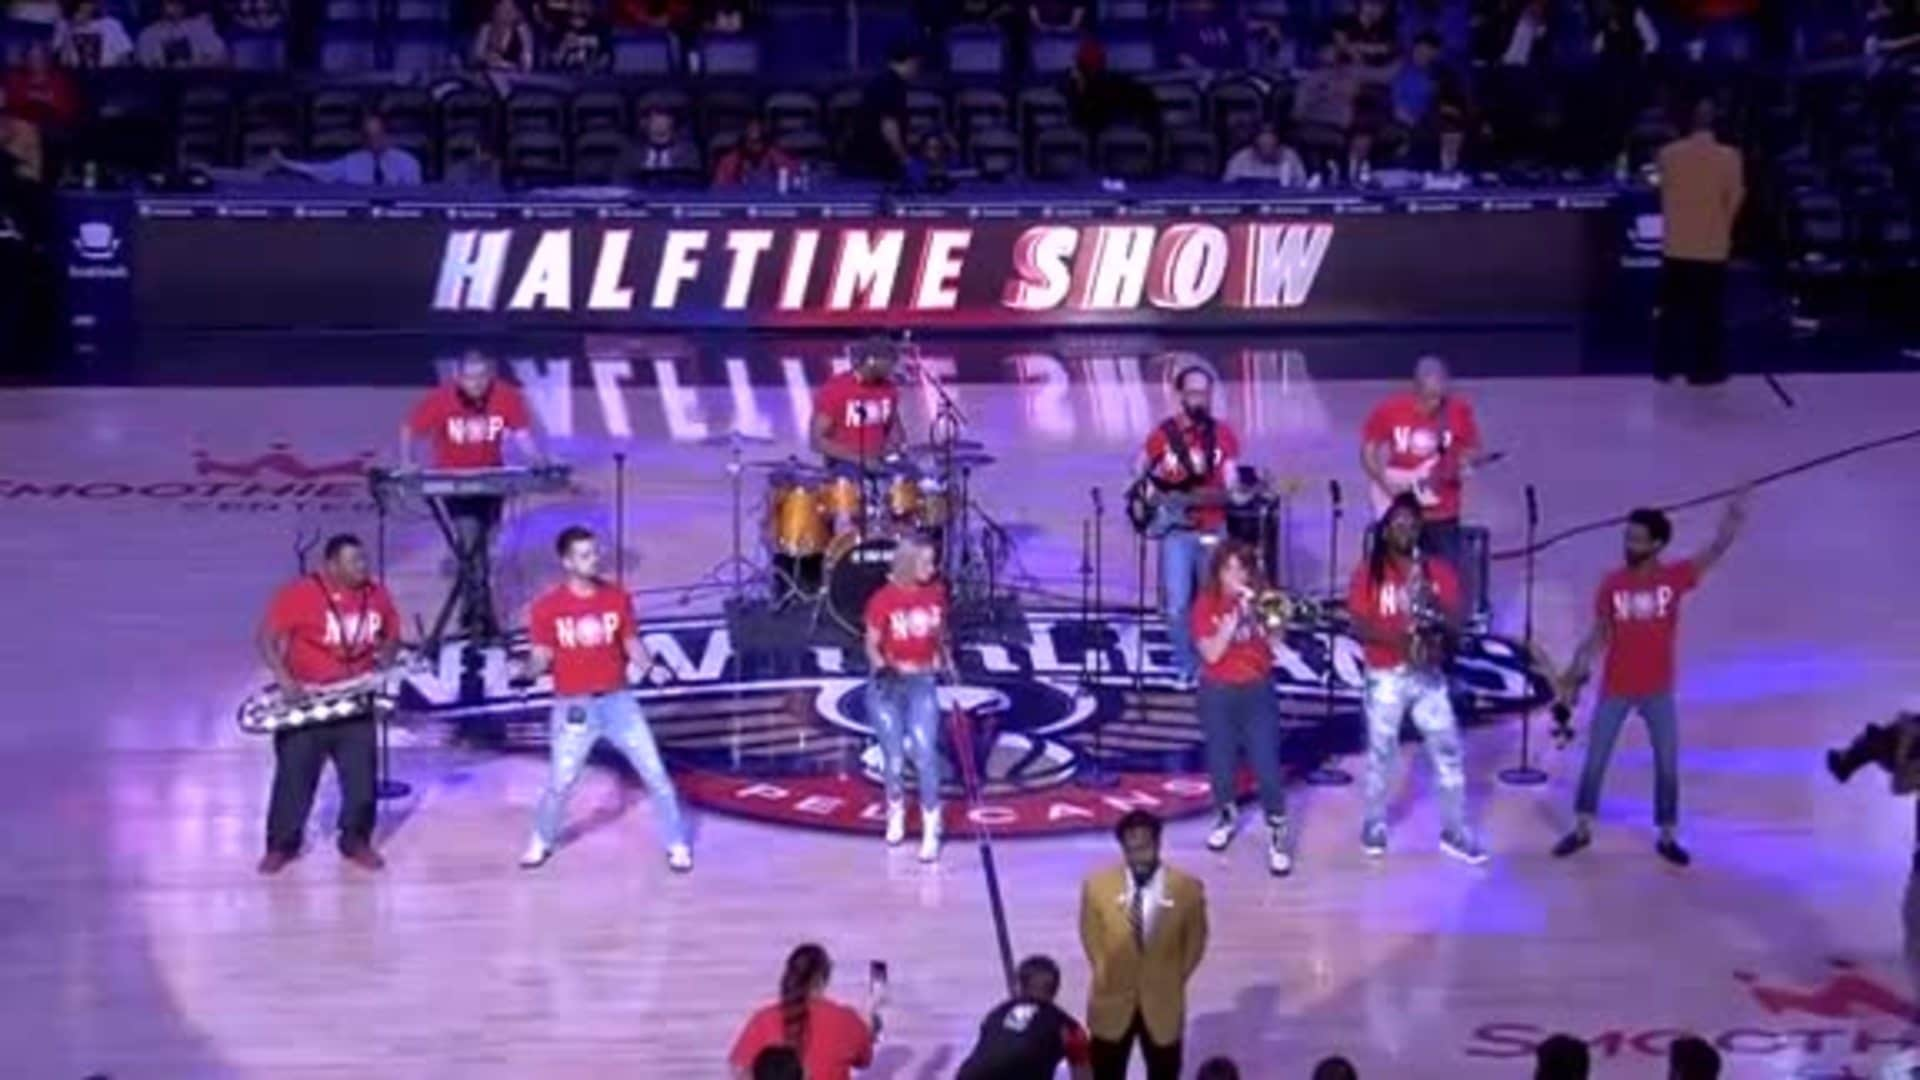 Pelicans Halftime: The Phunky Monkeys - January 16, 2020 vs. Utah Jazz